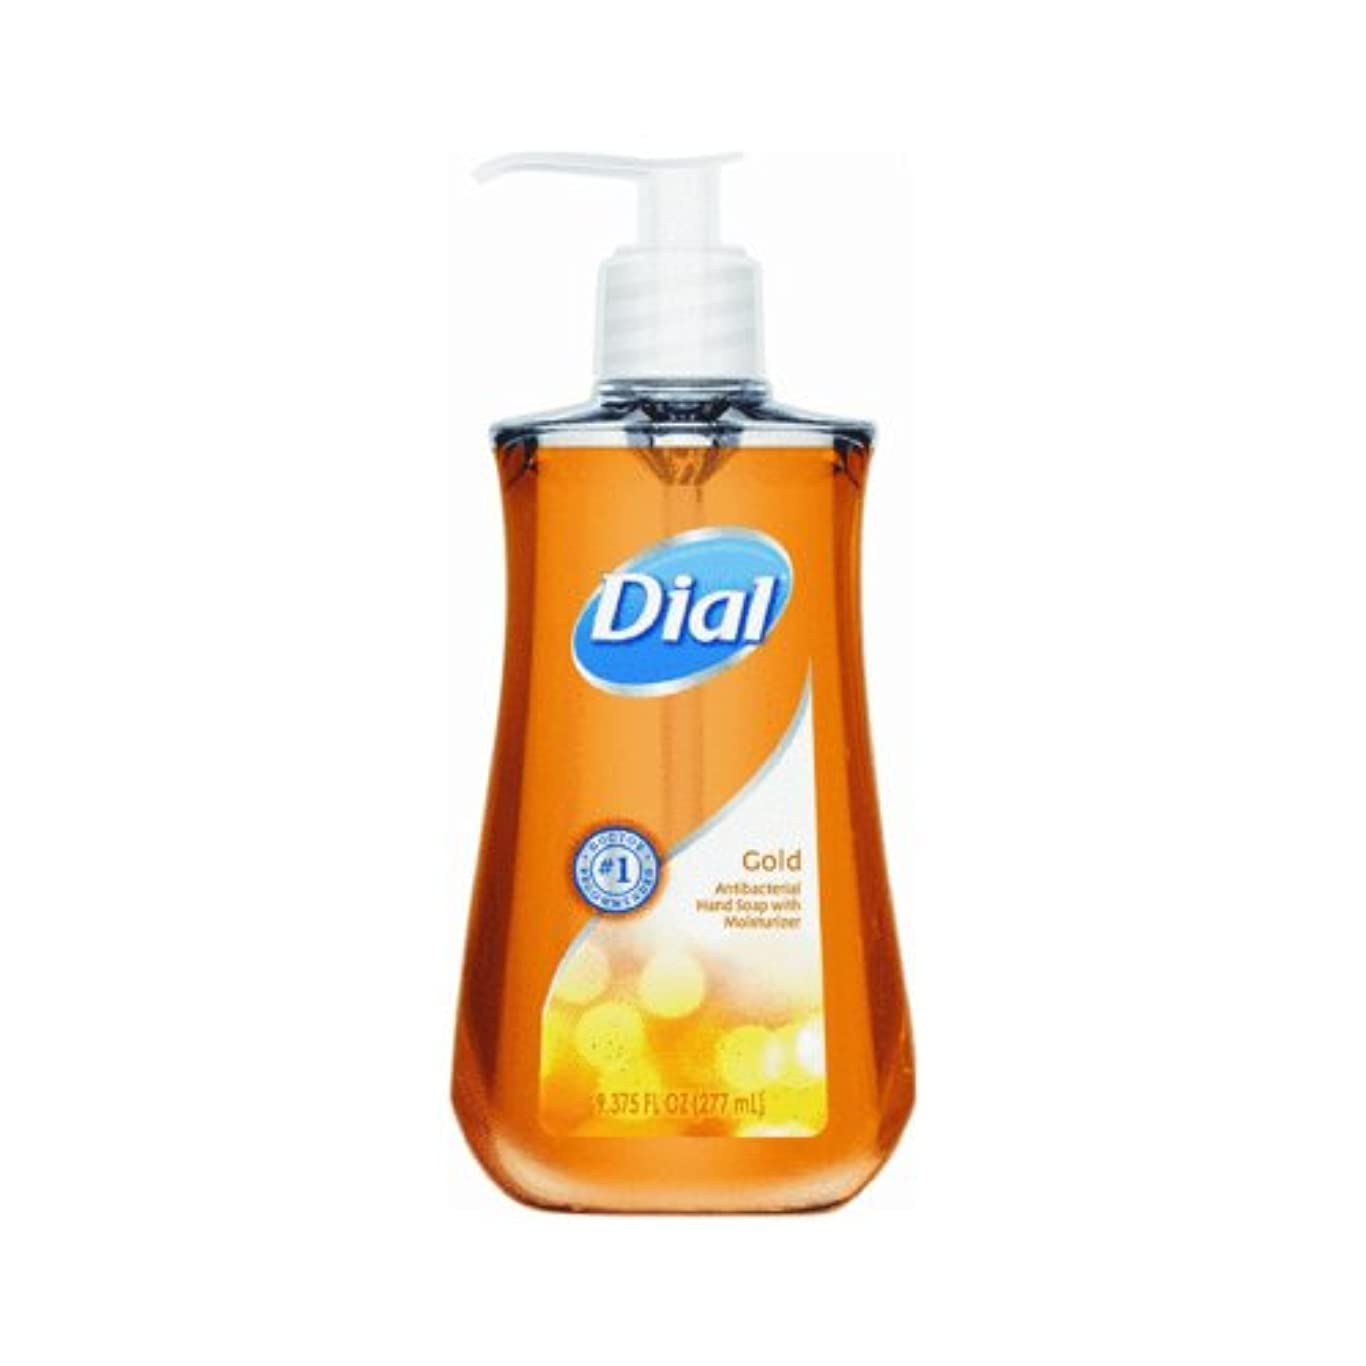 あなたのものオーバーヘッドはしごDial Antibacterial Hand Soap, Gold with Moisturizer 280 ml (Pack of 12) (並行輸入品)